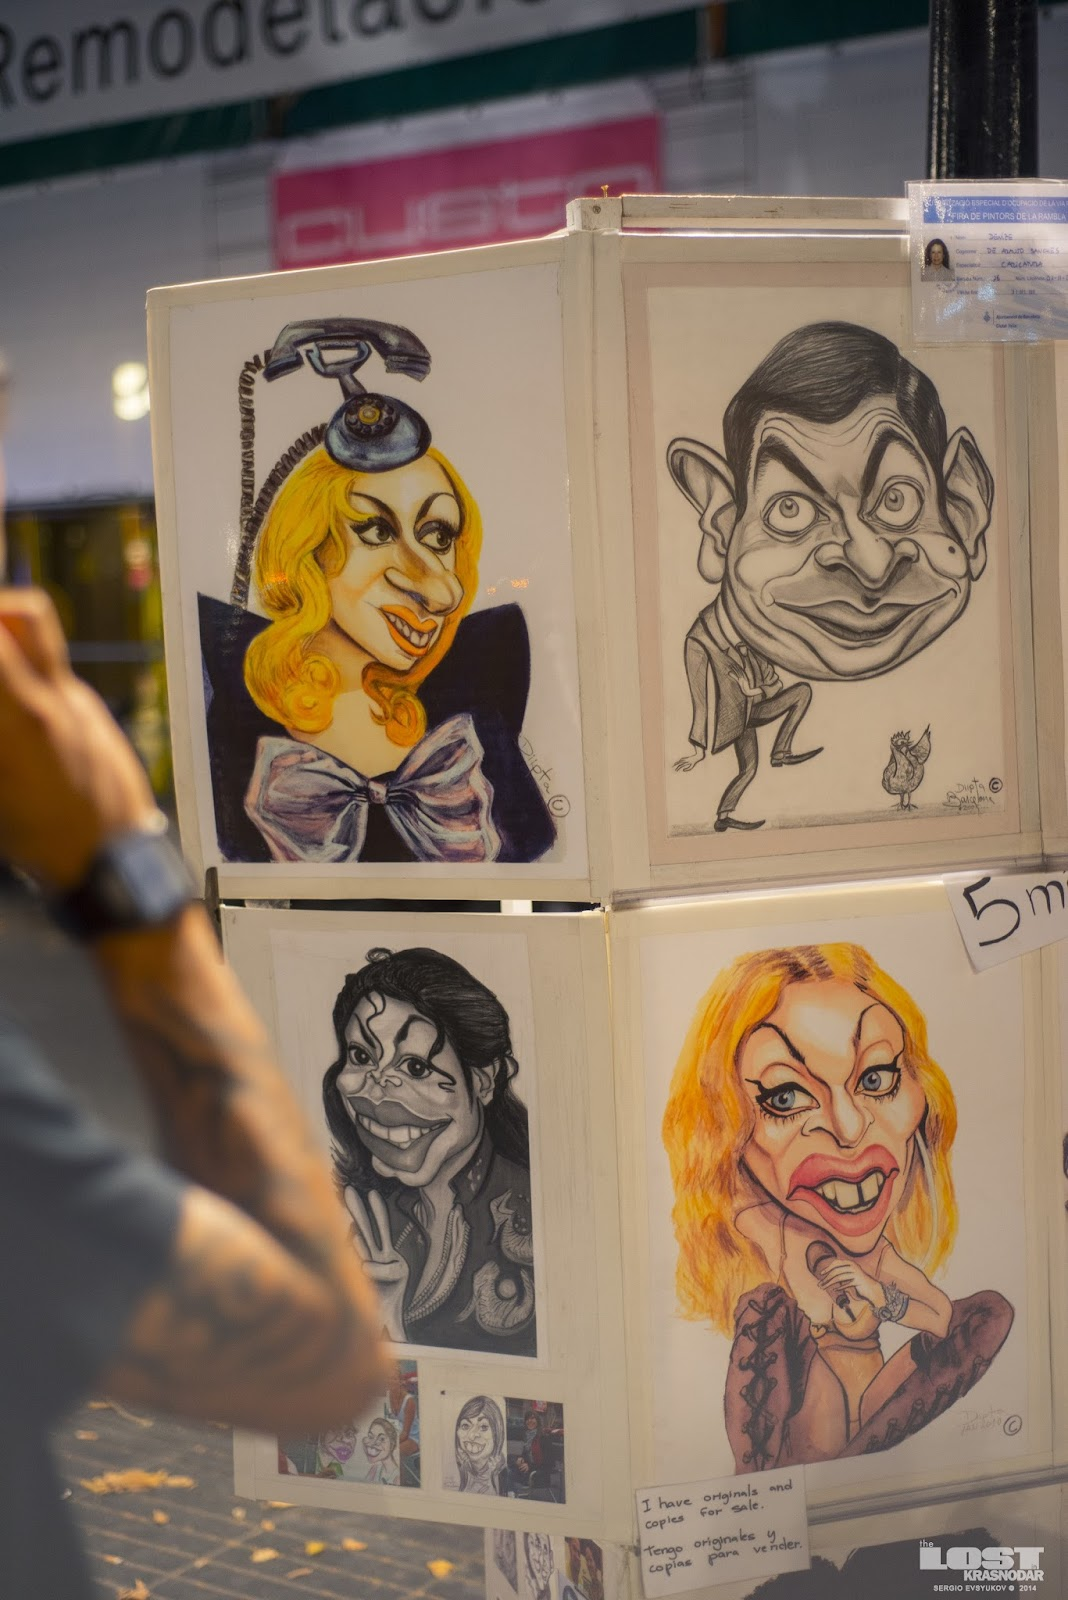 caricatures of famous pop stars Lady Gaga, Madonna, MJ